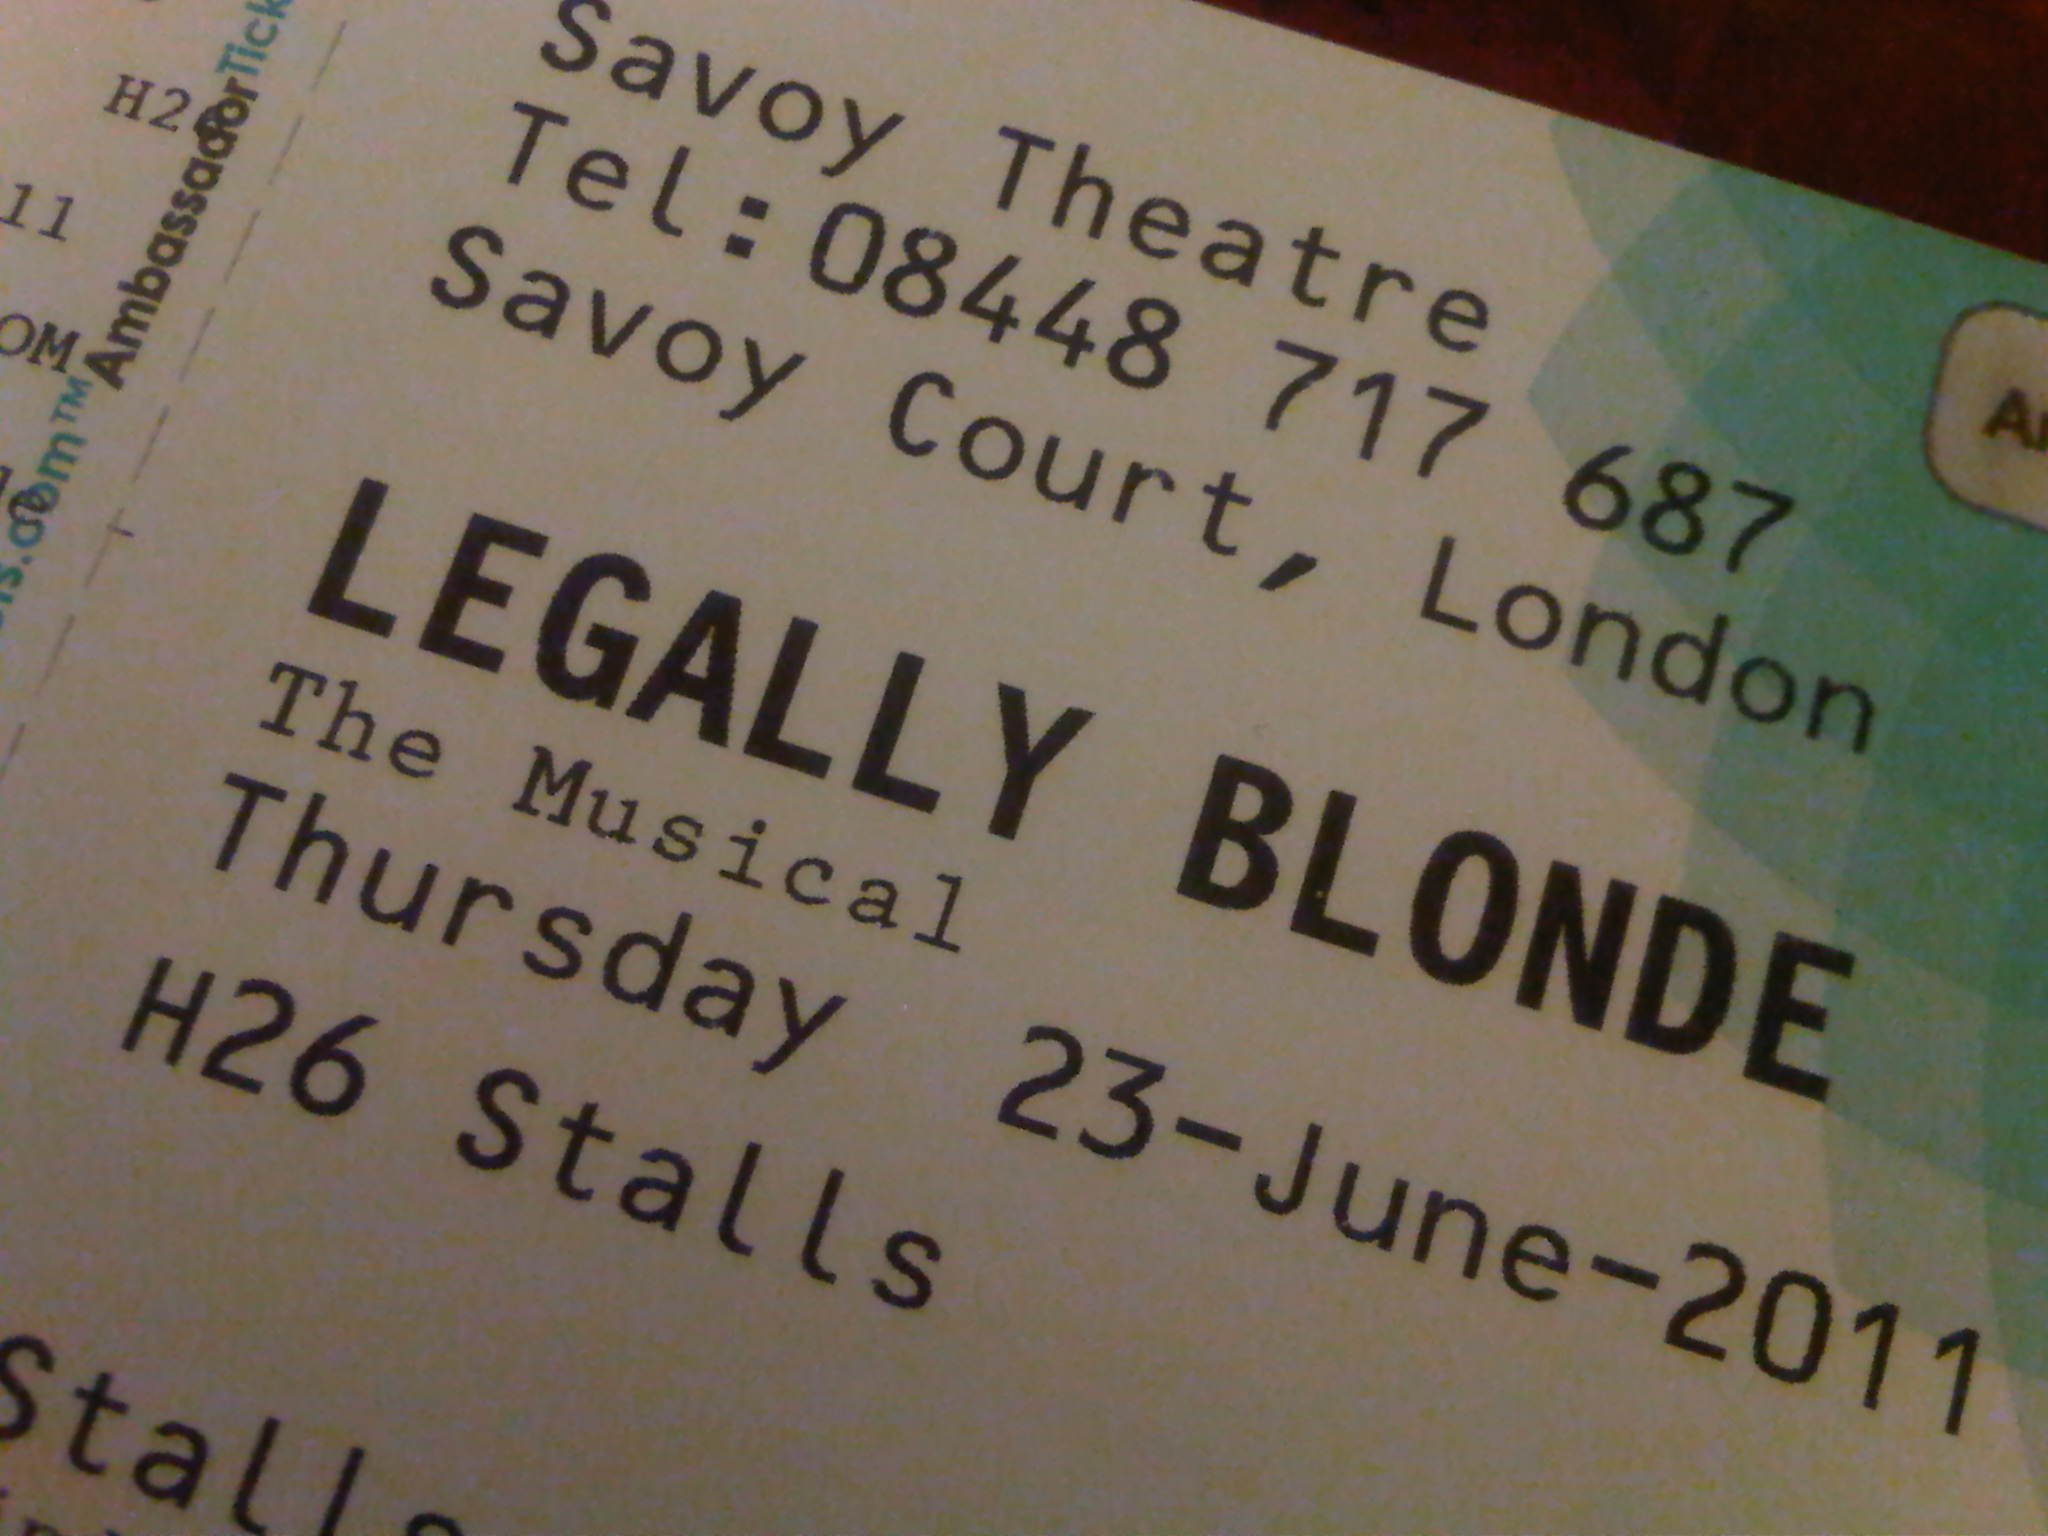 Janan's Ticket Stub for Legally Blonde The Musical